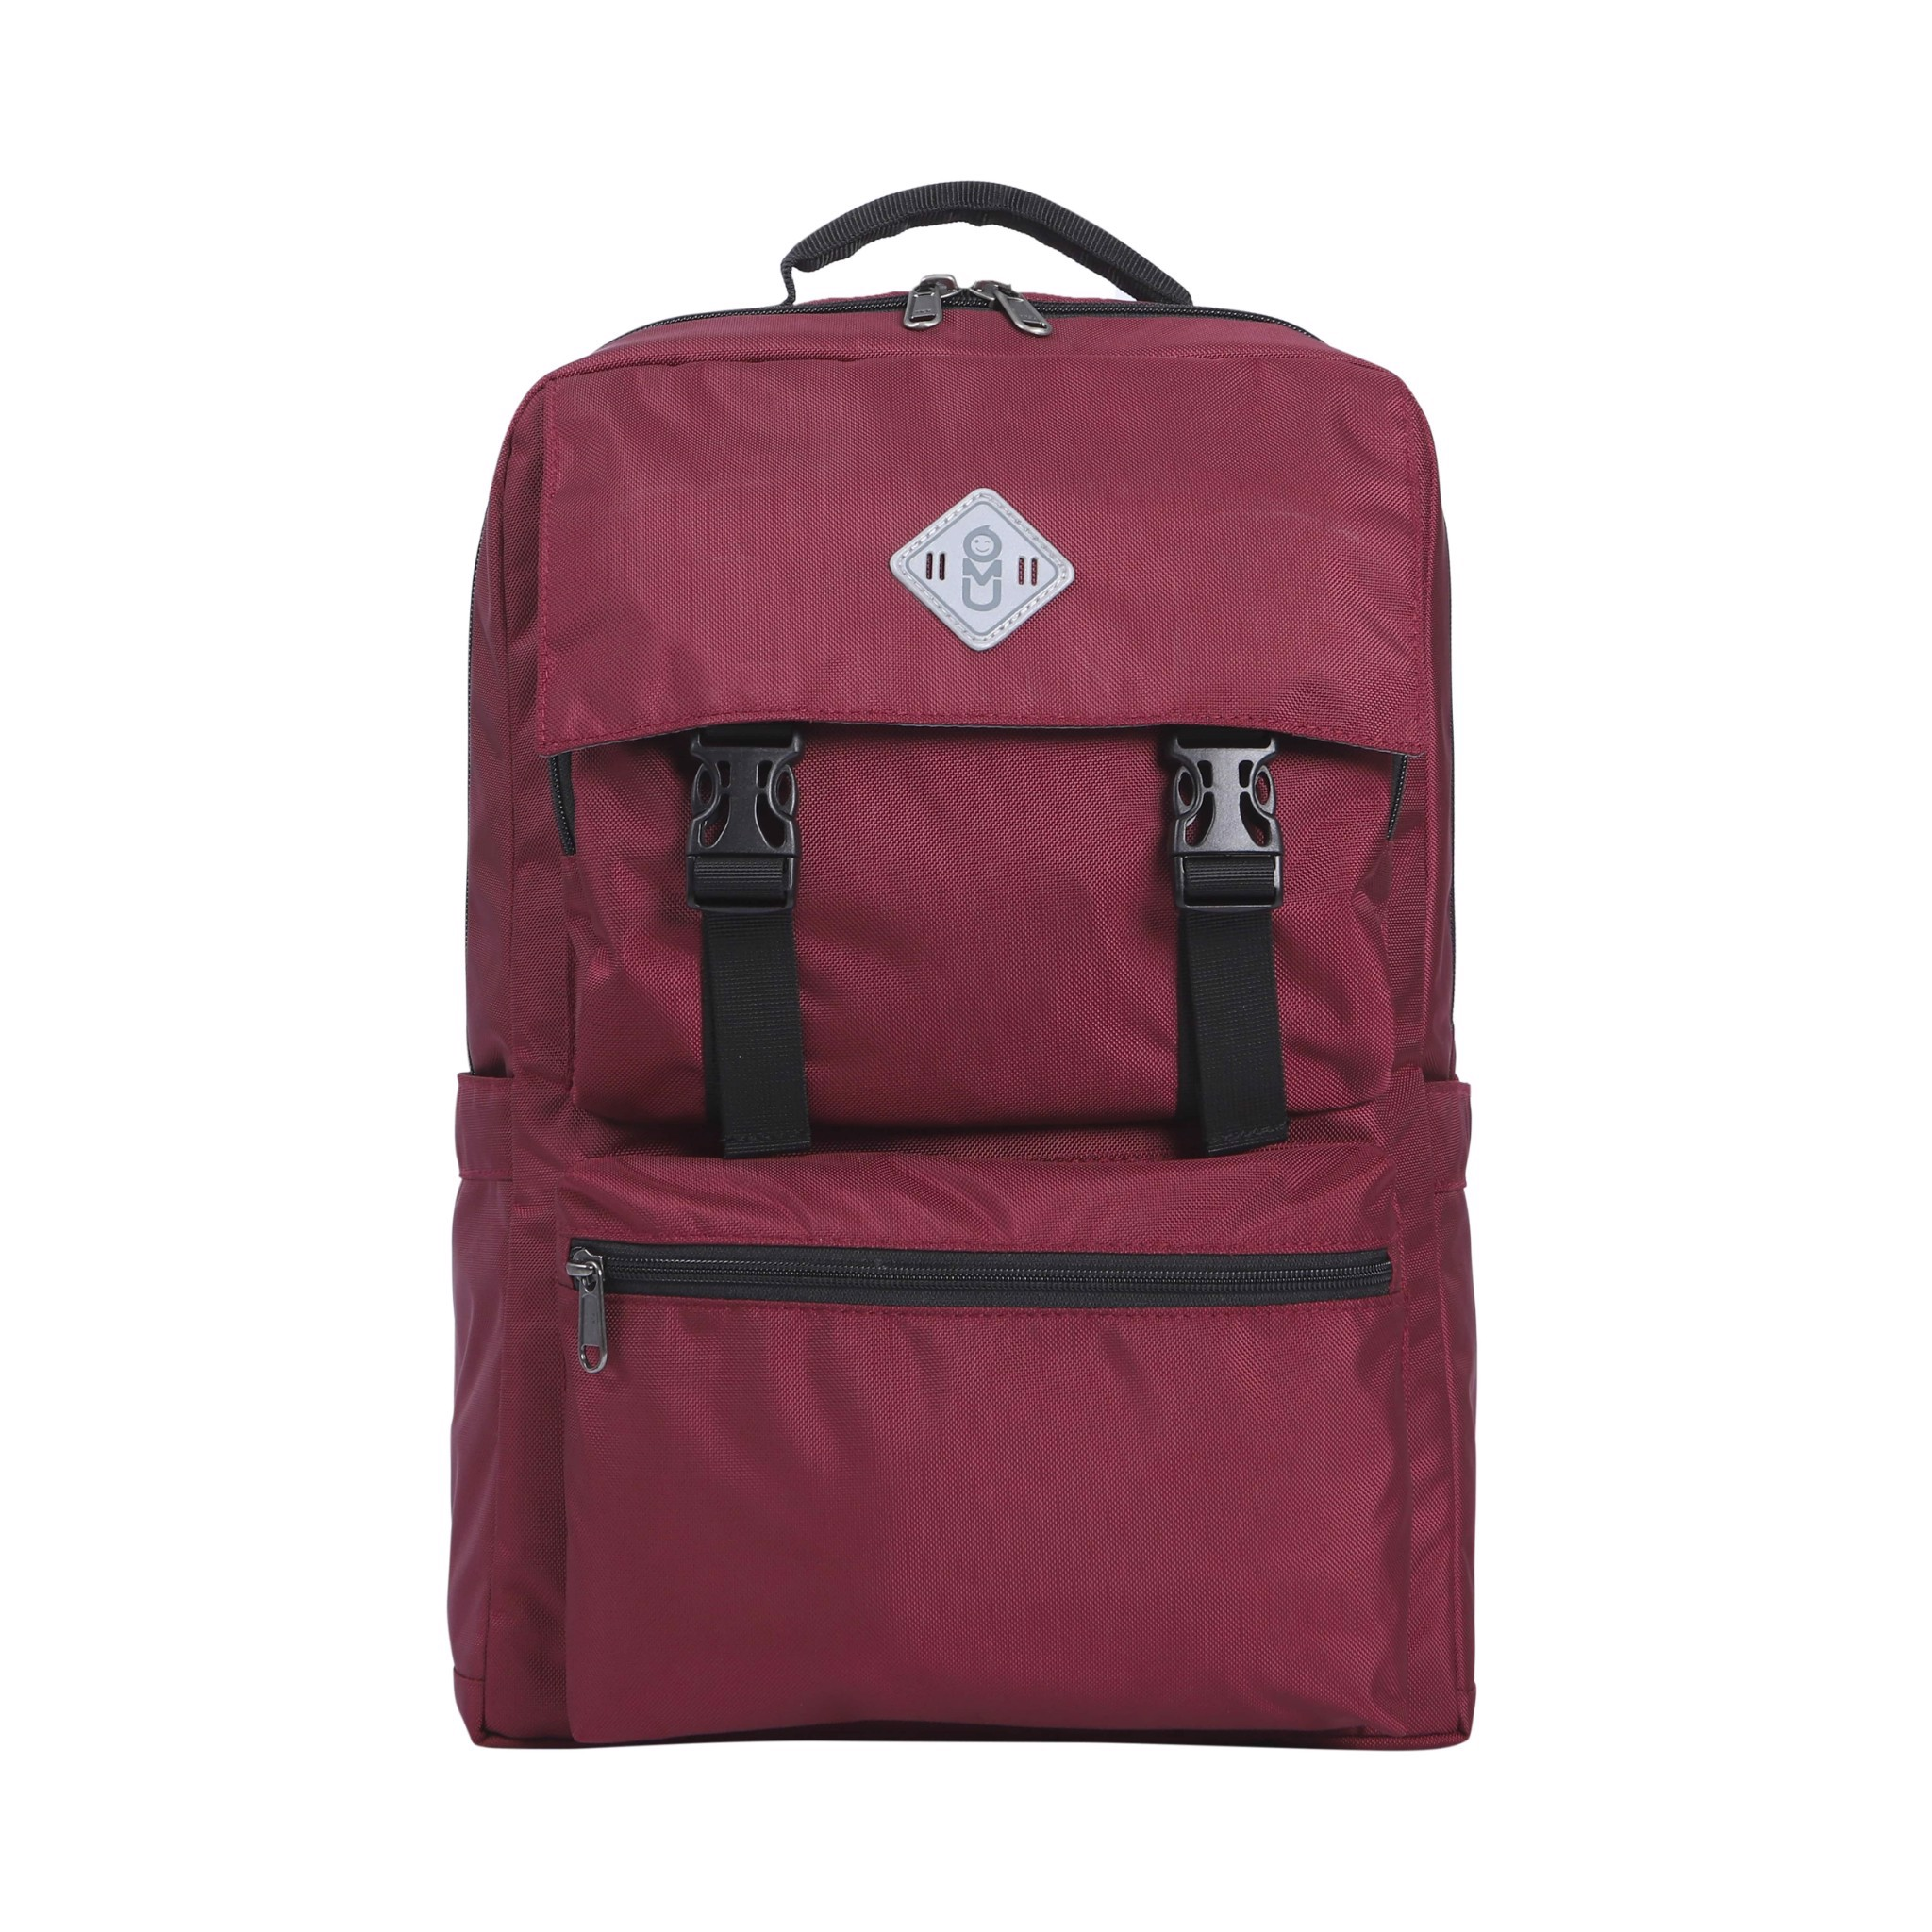 UMO TRAVELEYS BackPack D.Red - Balo Laptop Cao Cấp